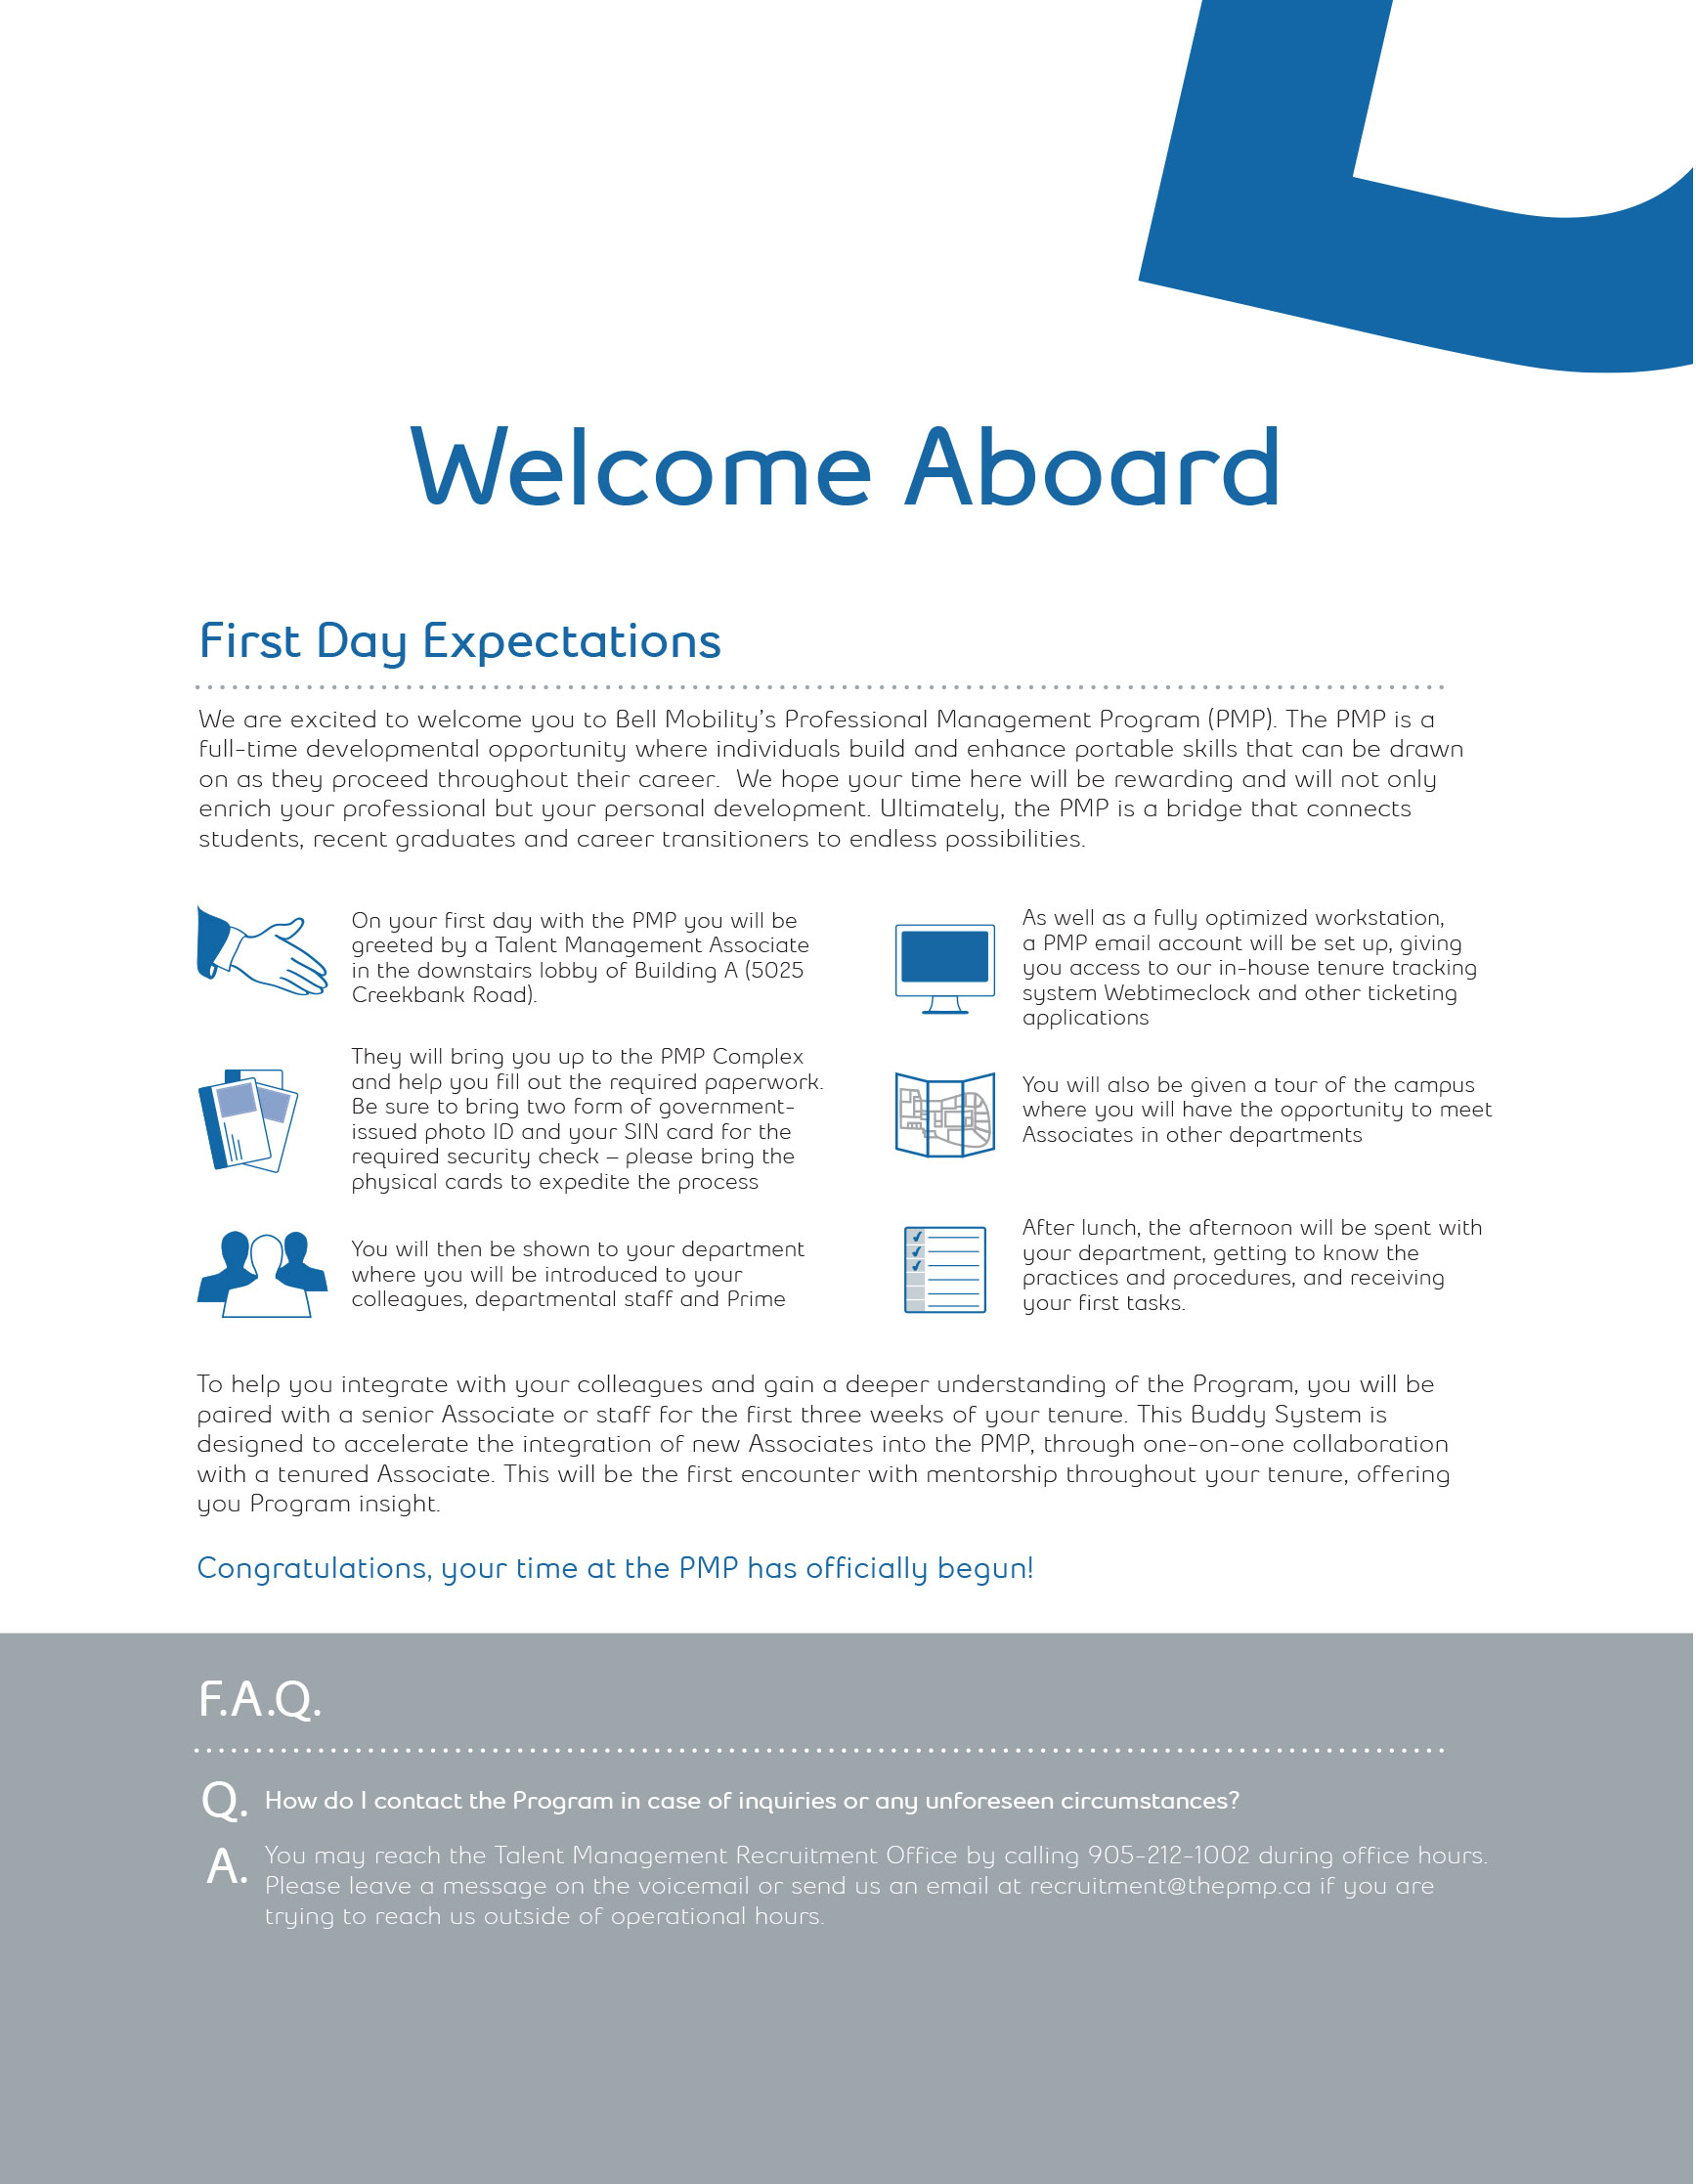 Orientation Manual Welcome page